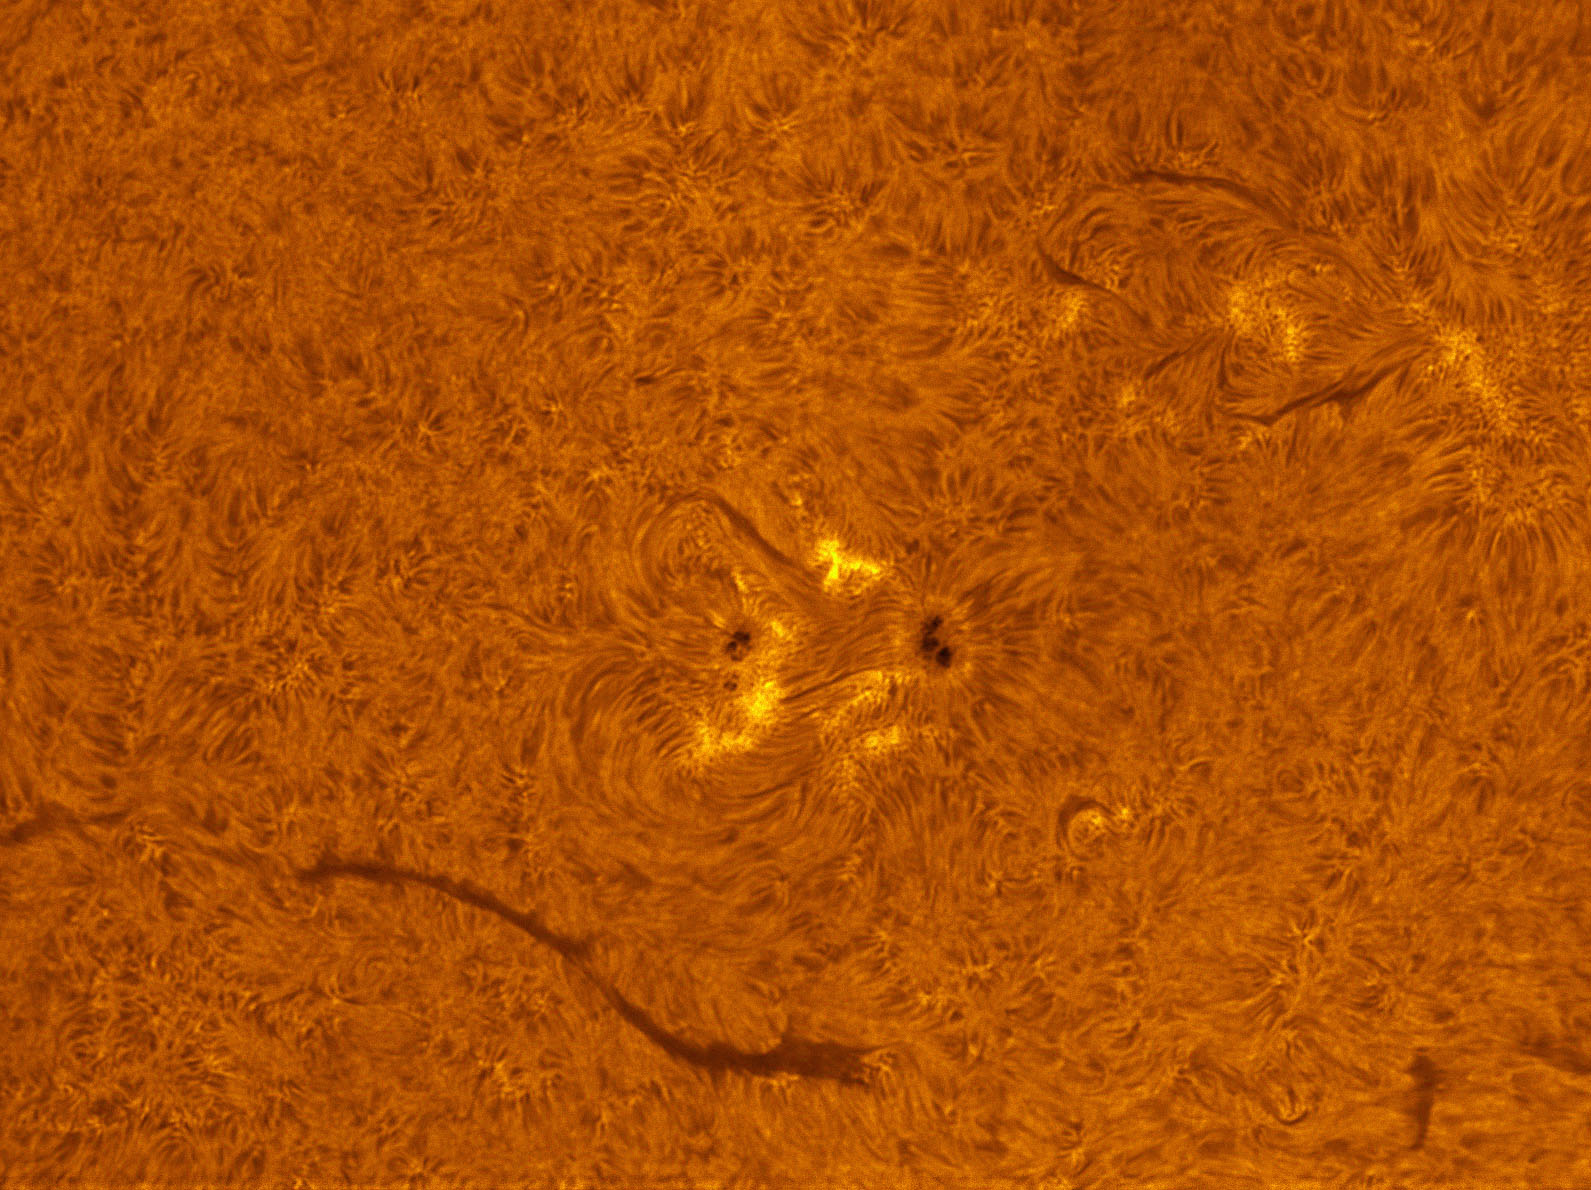 Sunspot 1554 in h-alpha 08/25/2012